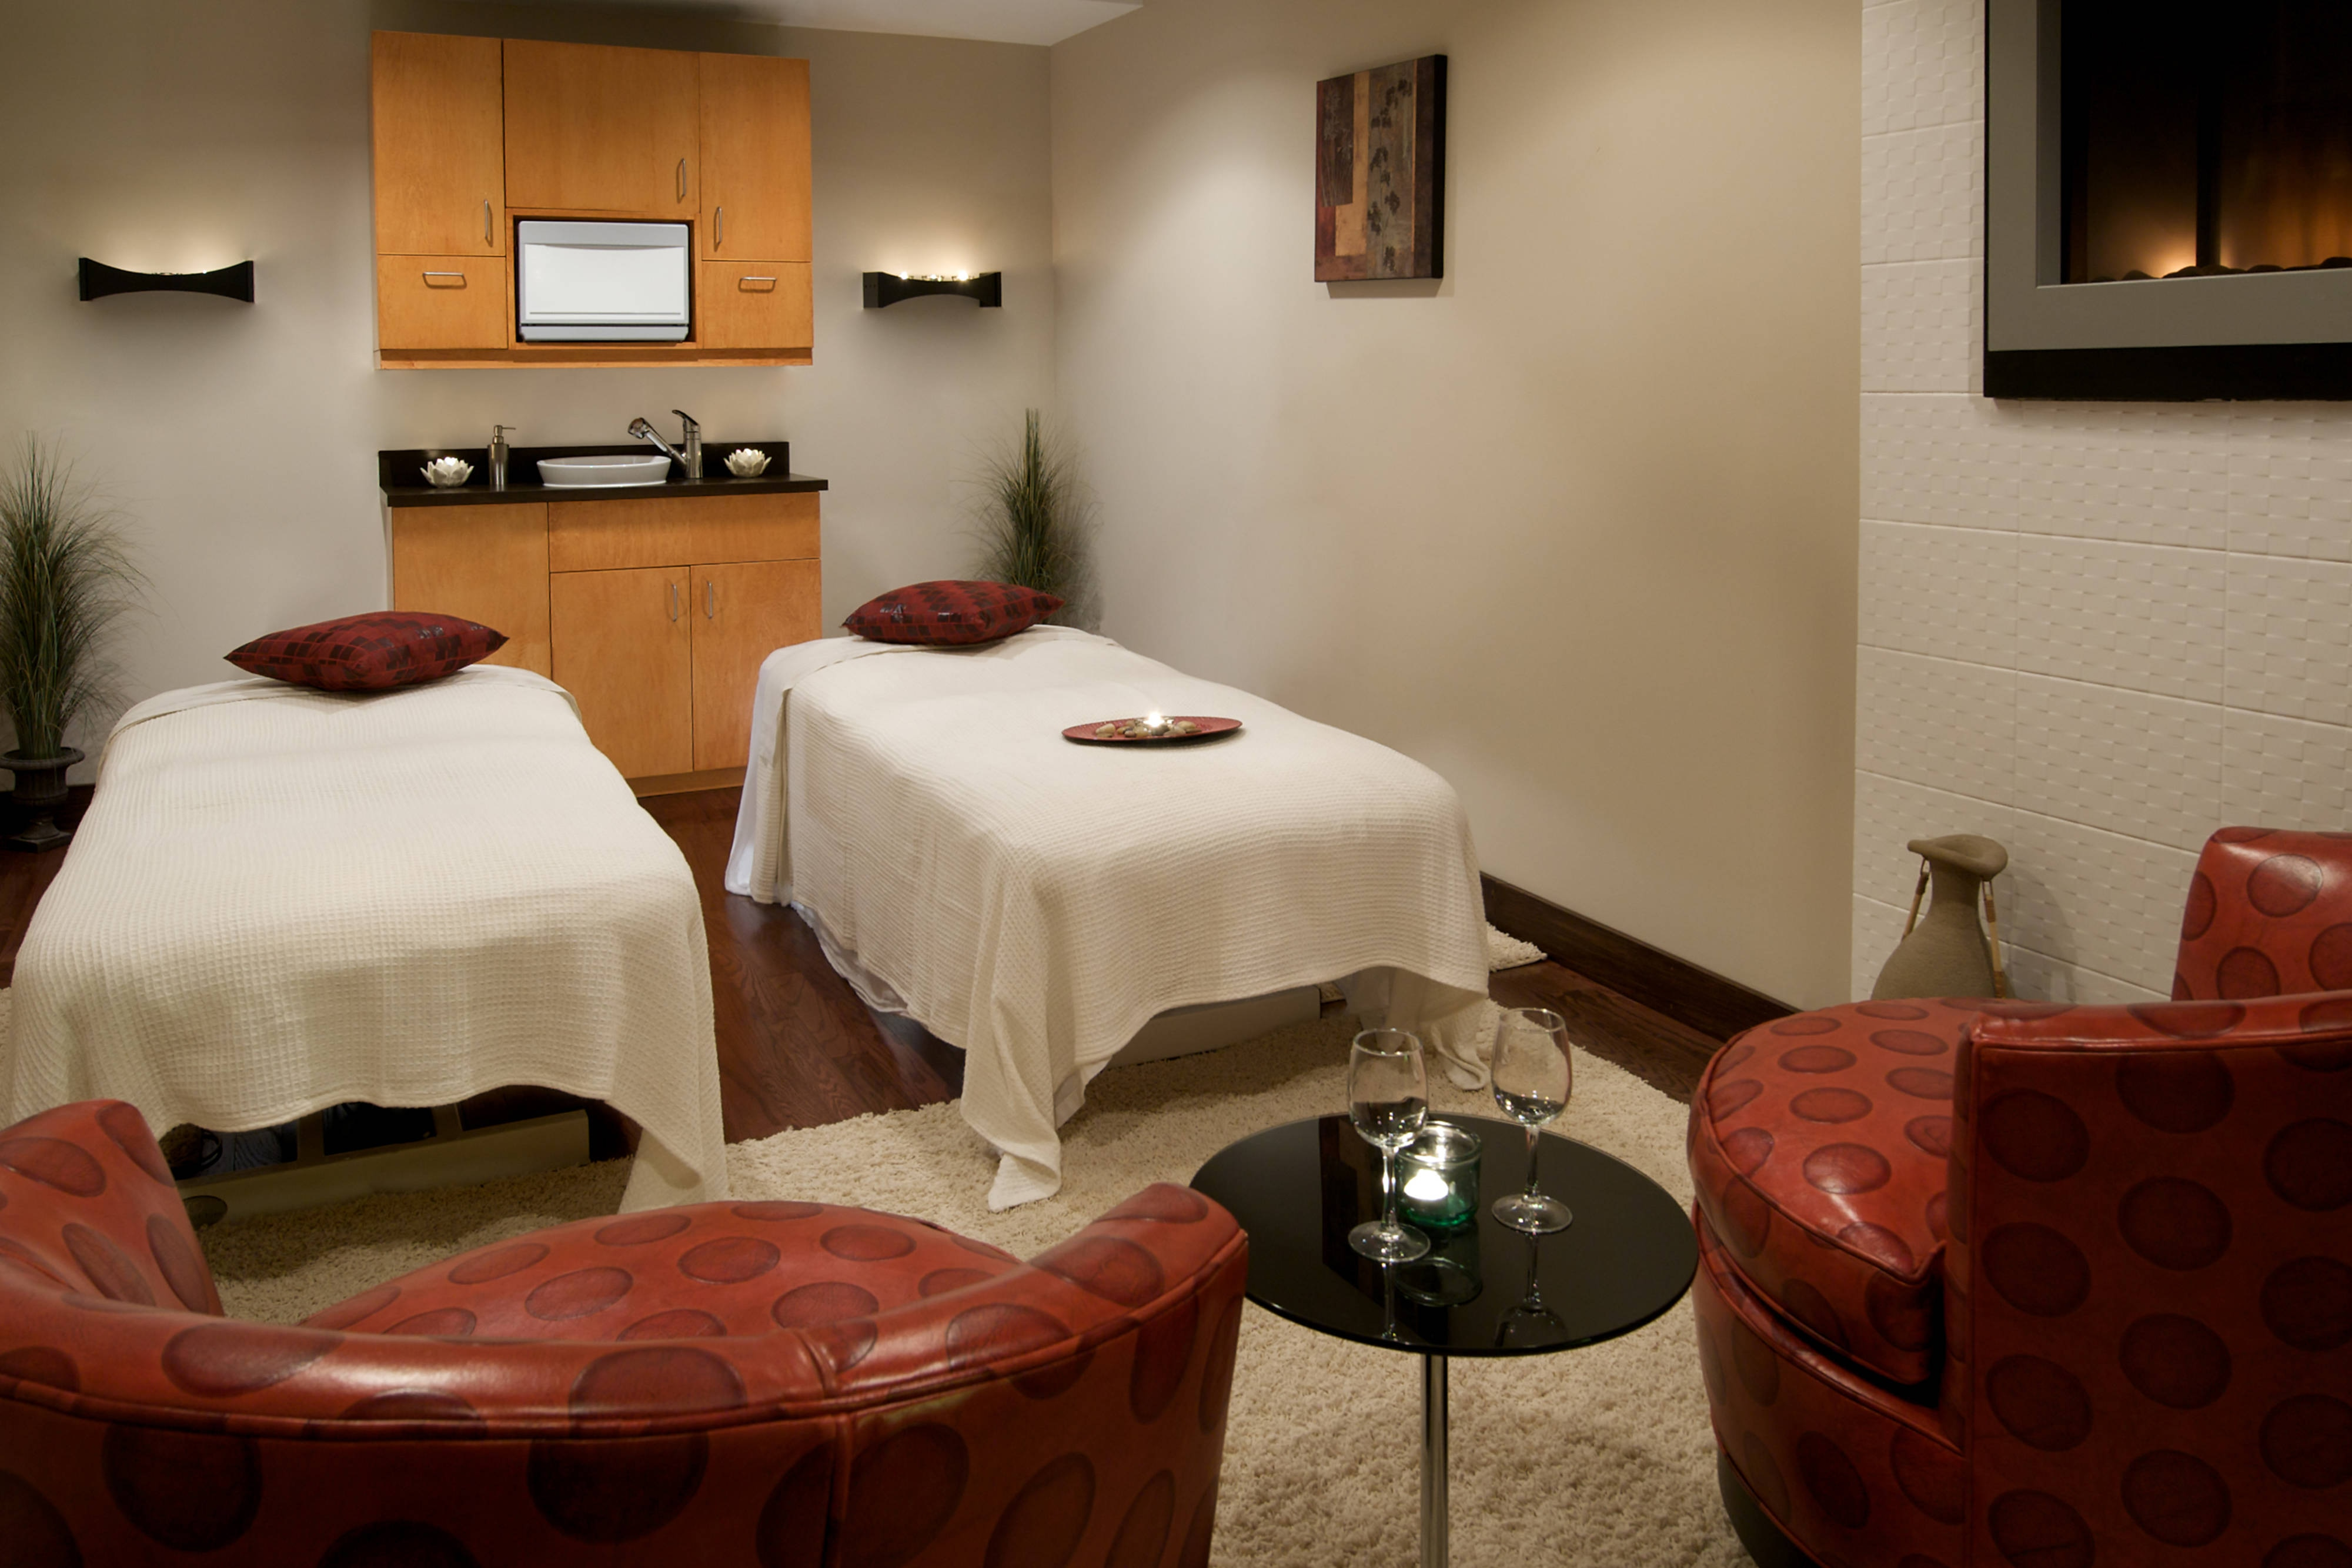 Hotel spa downtown Halifax